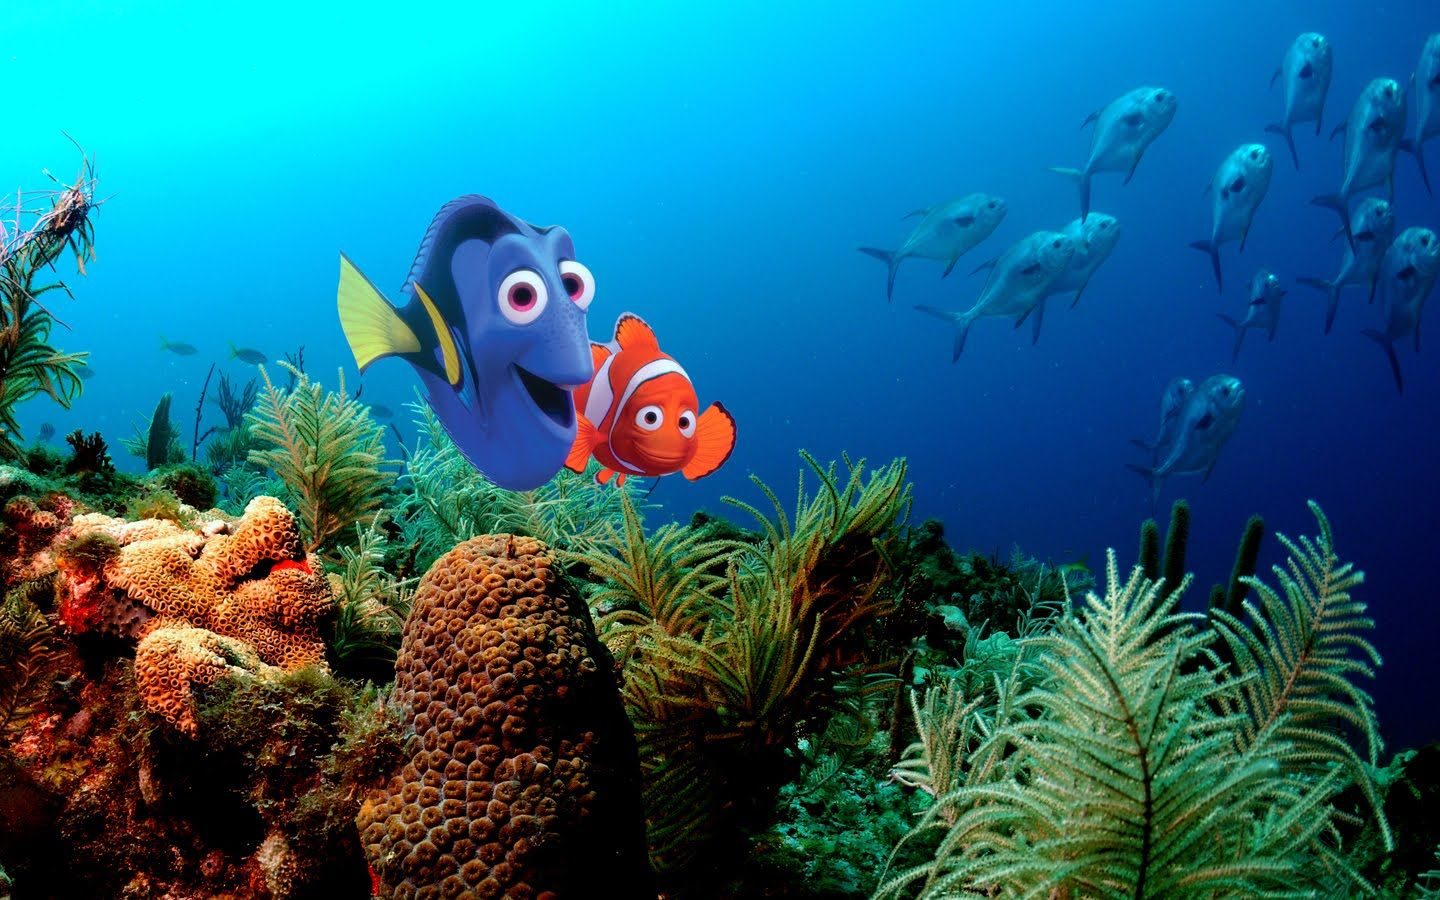 Finding Nemo Cartoon HD Wallpapers Free Download  Proyectos que